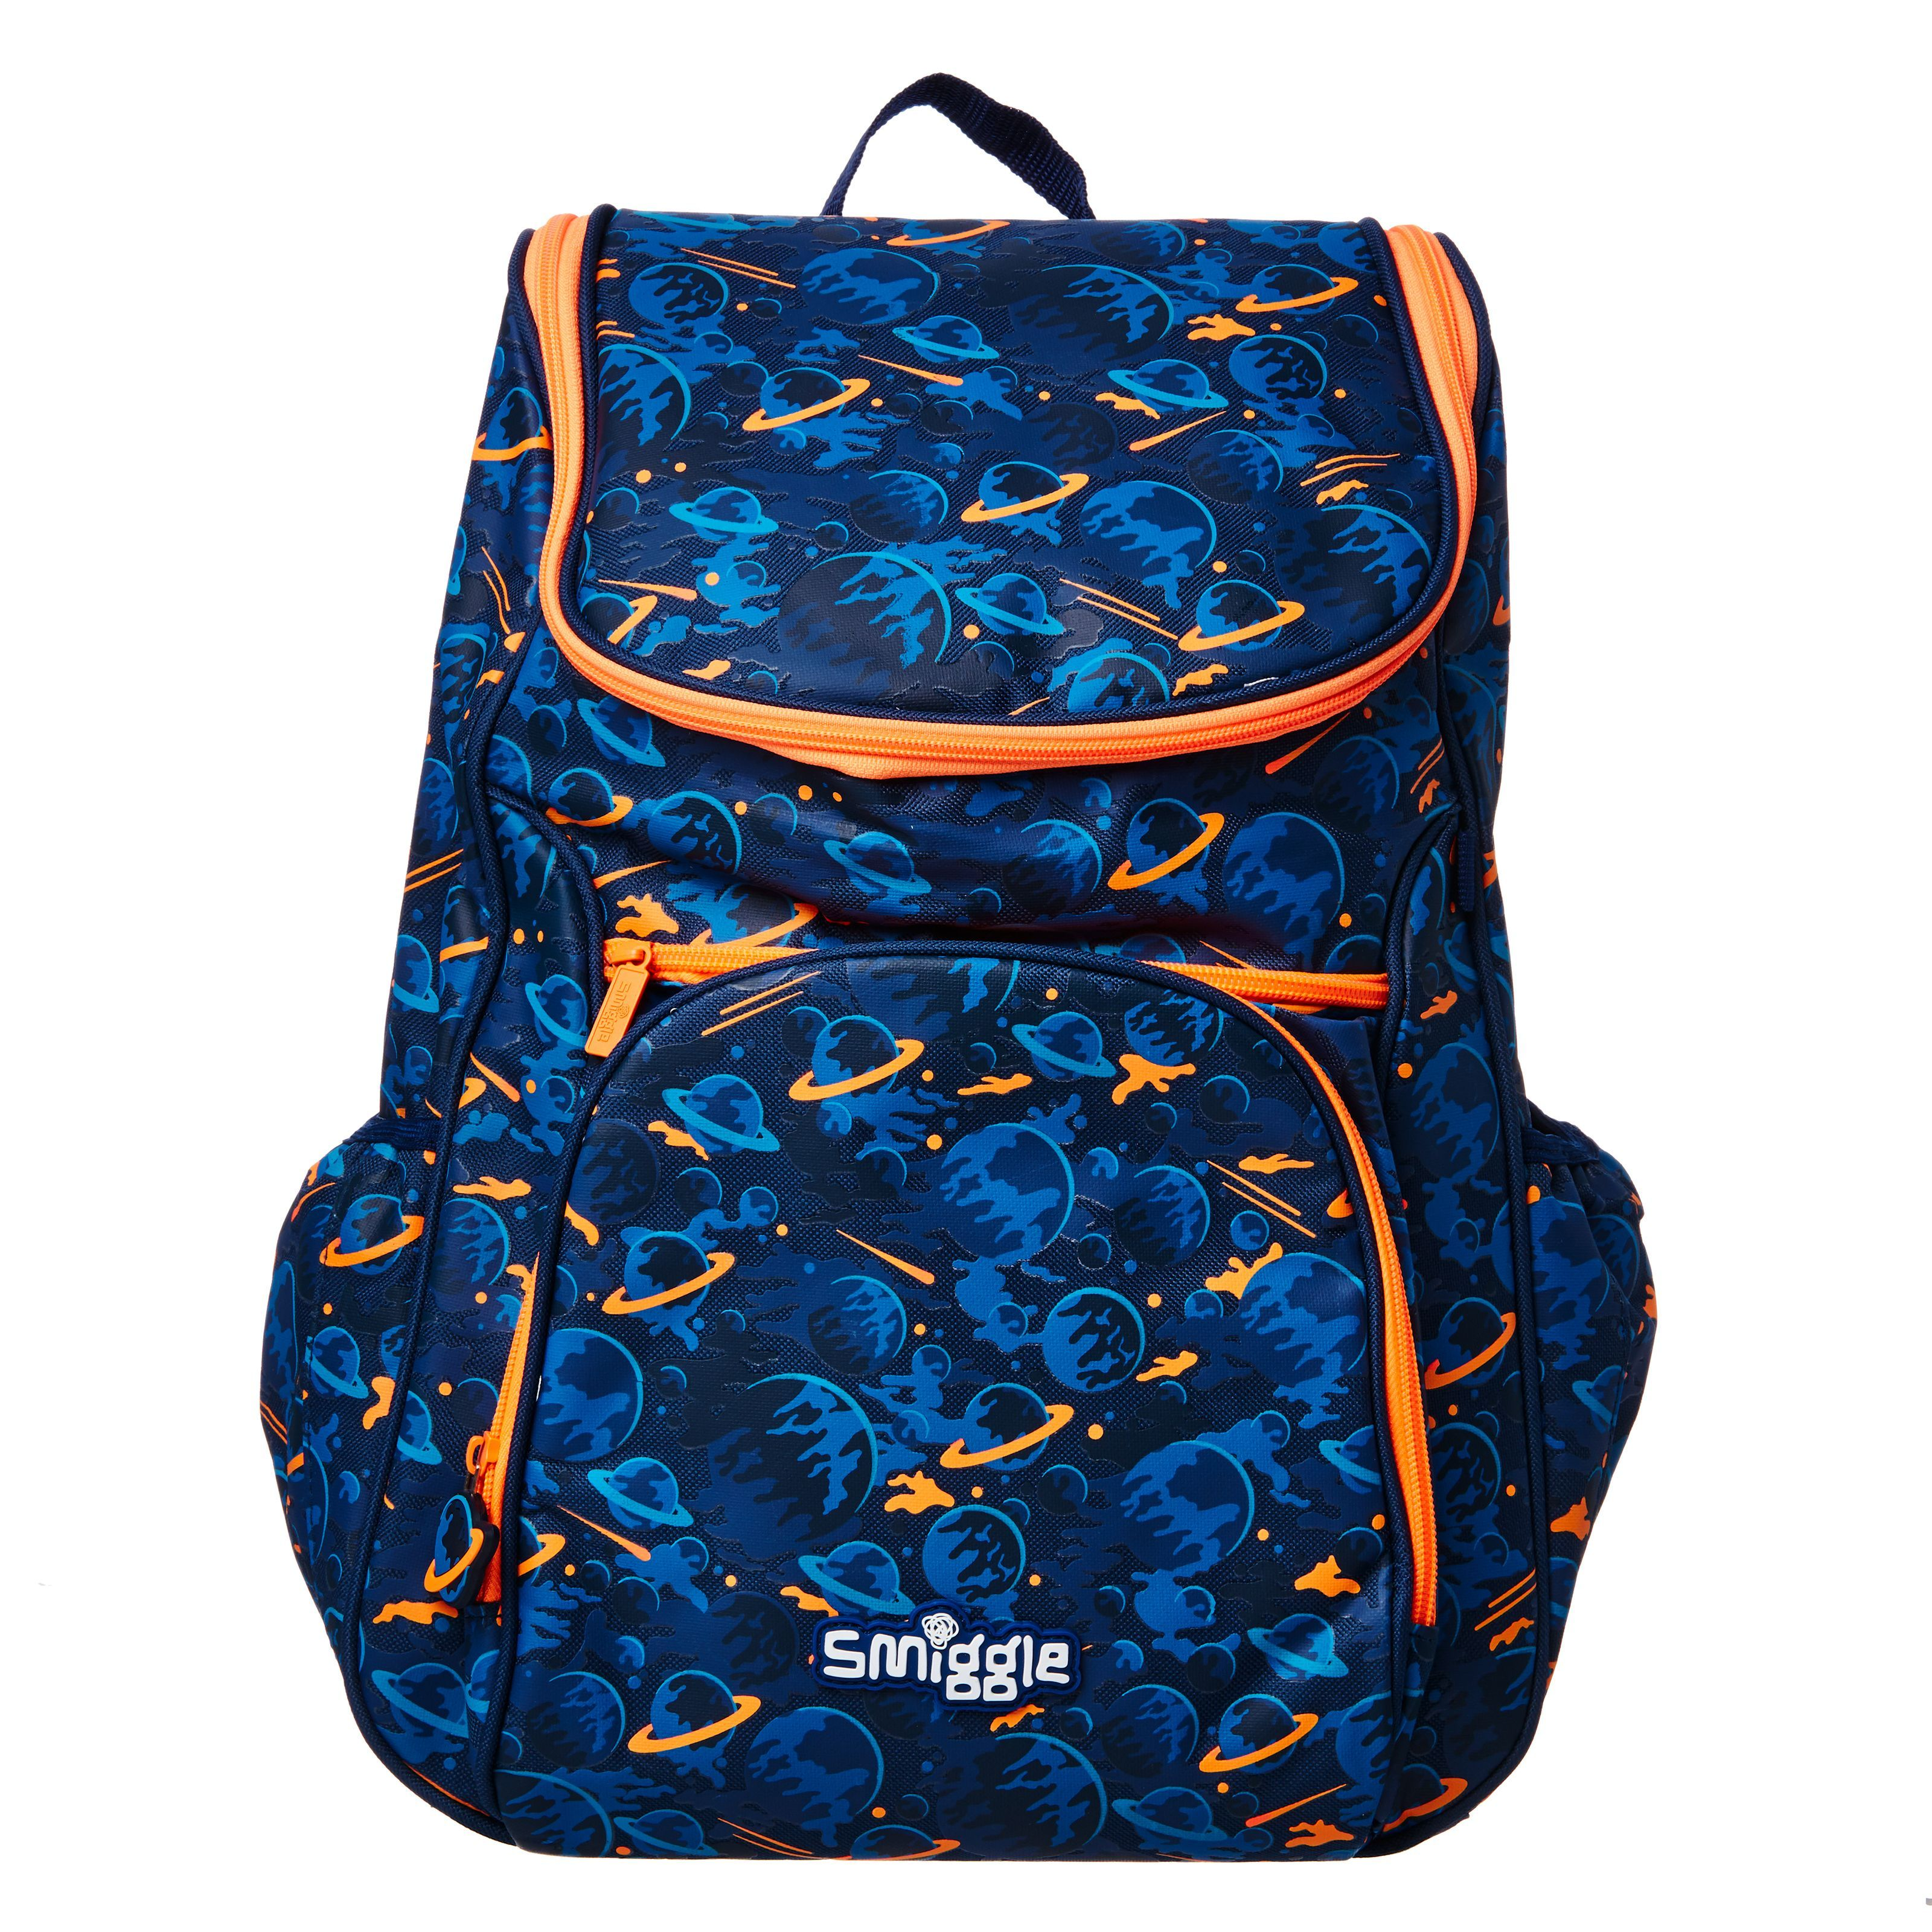 Now You See Me Access Backpack  ca8f7bcd4632c